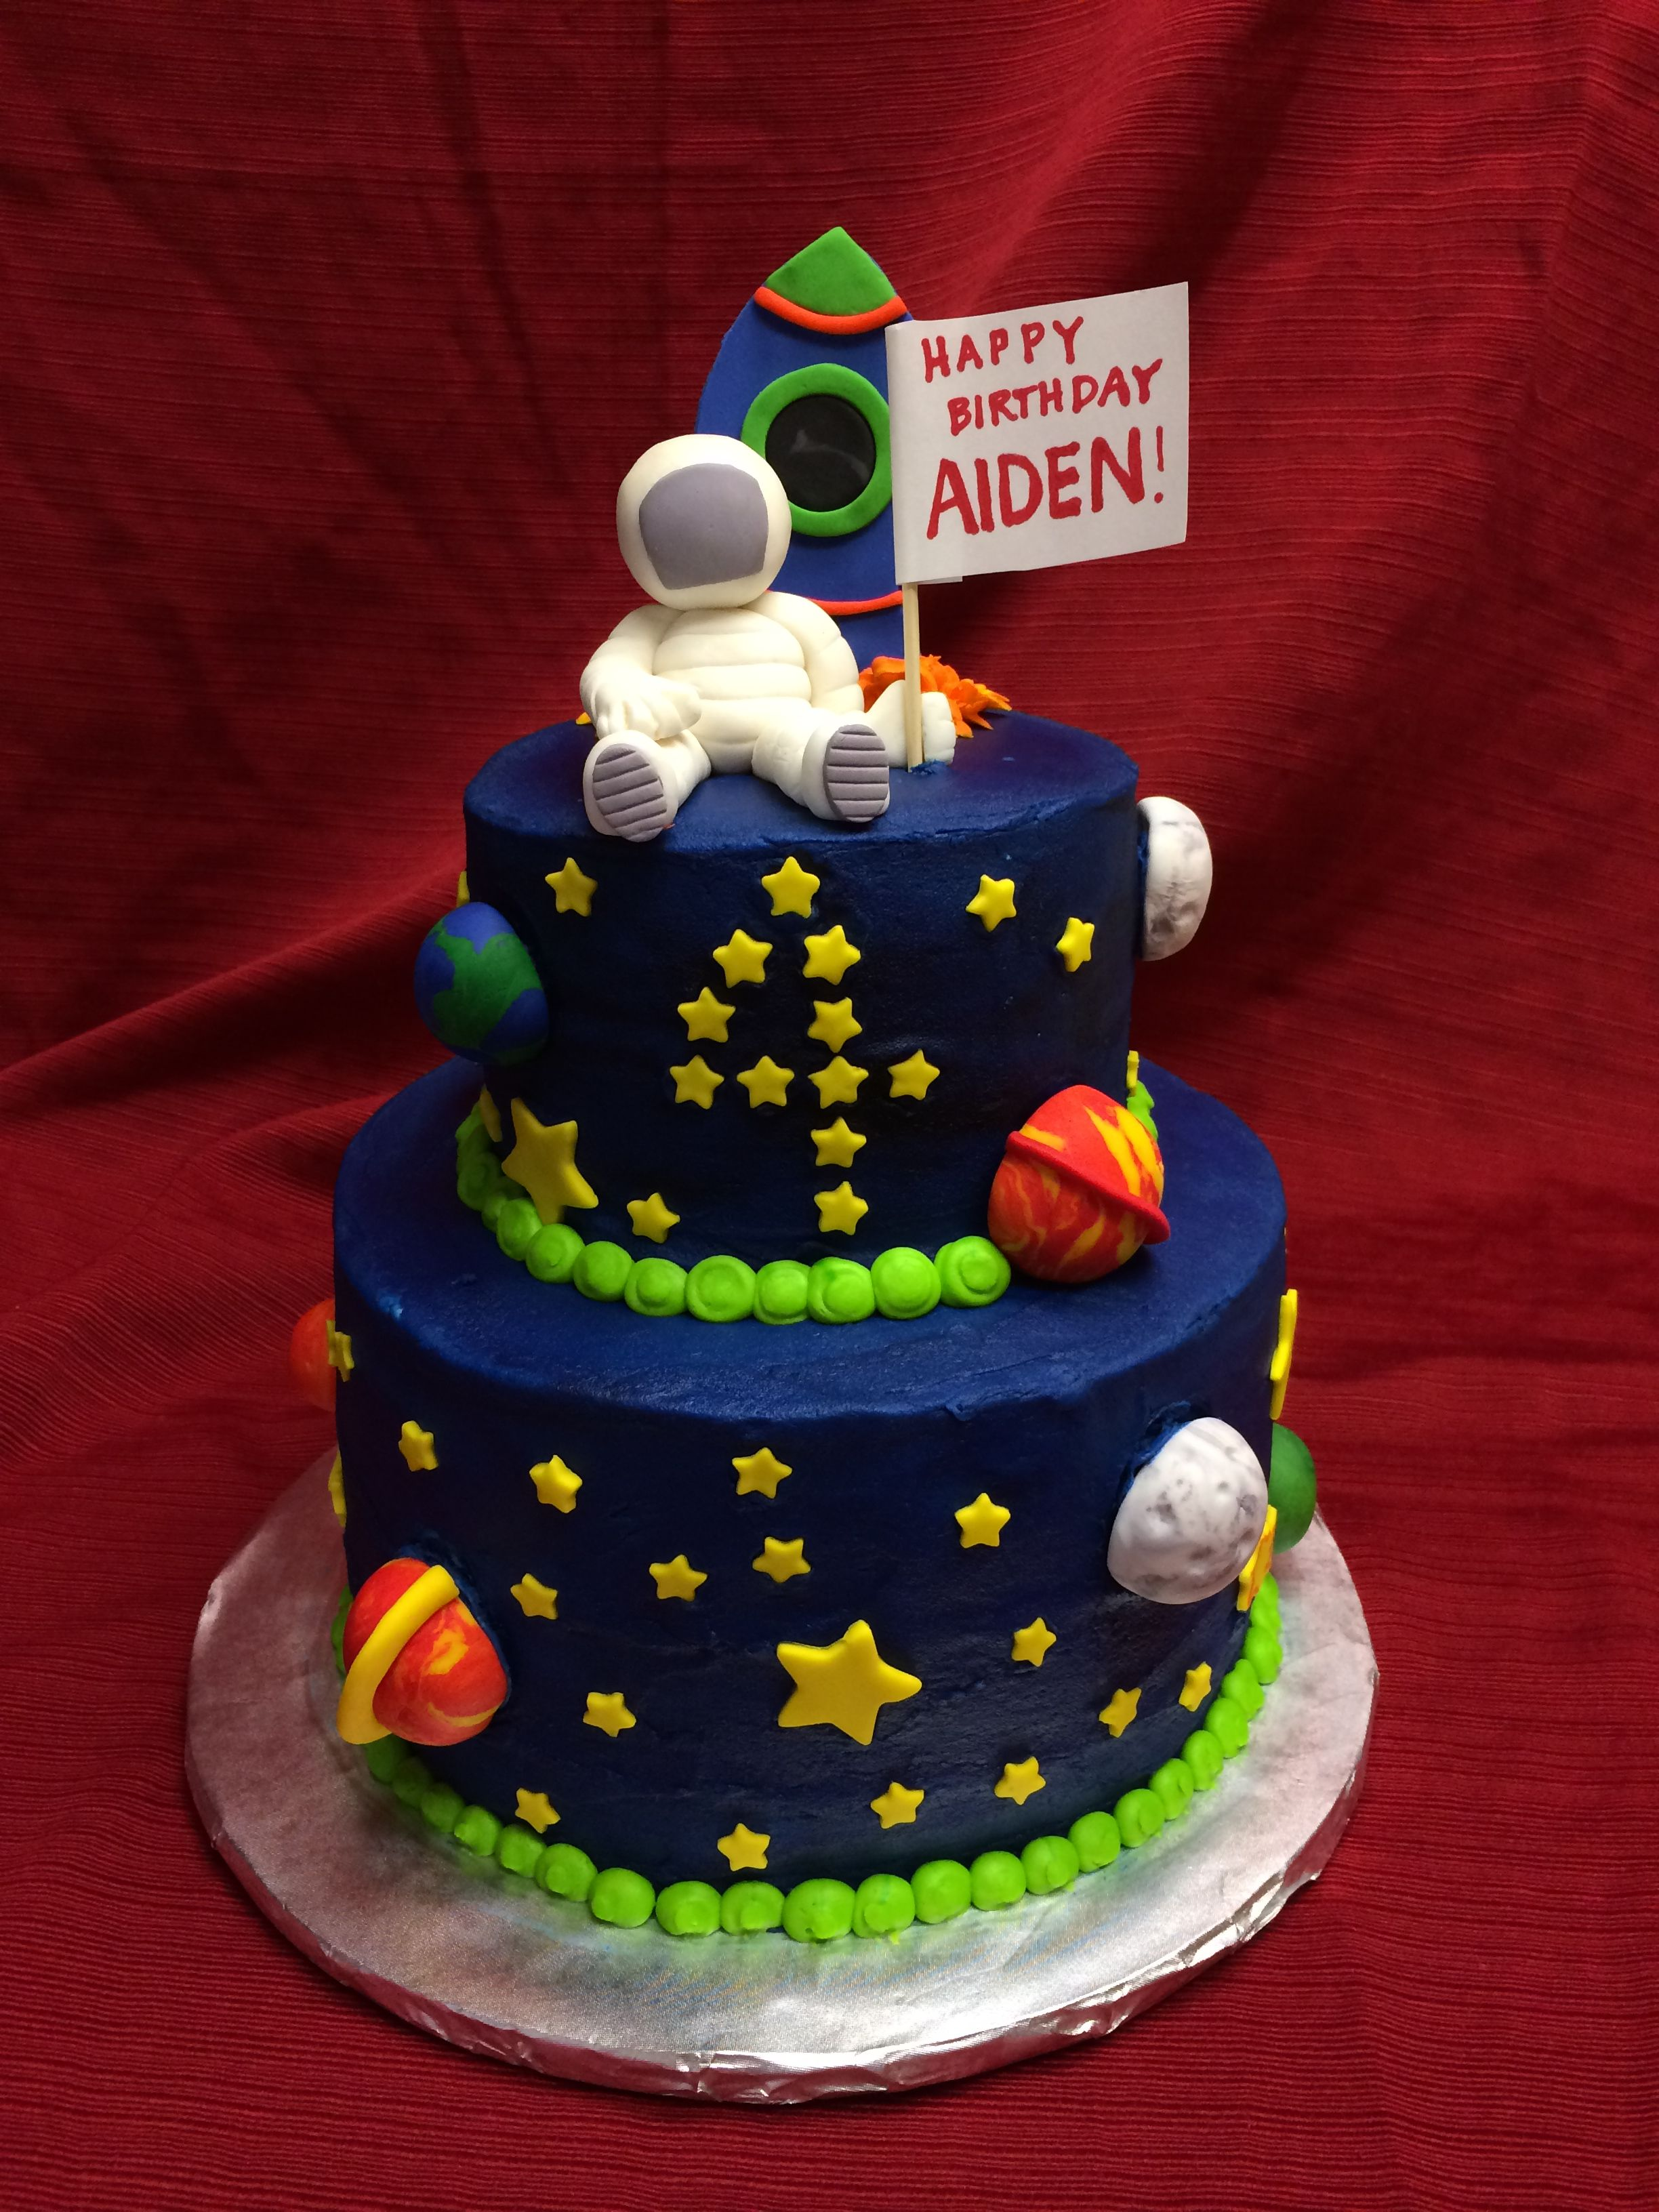 Space Themed Cake With Astronaut And Rocket